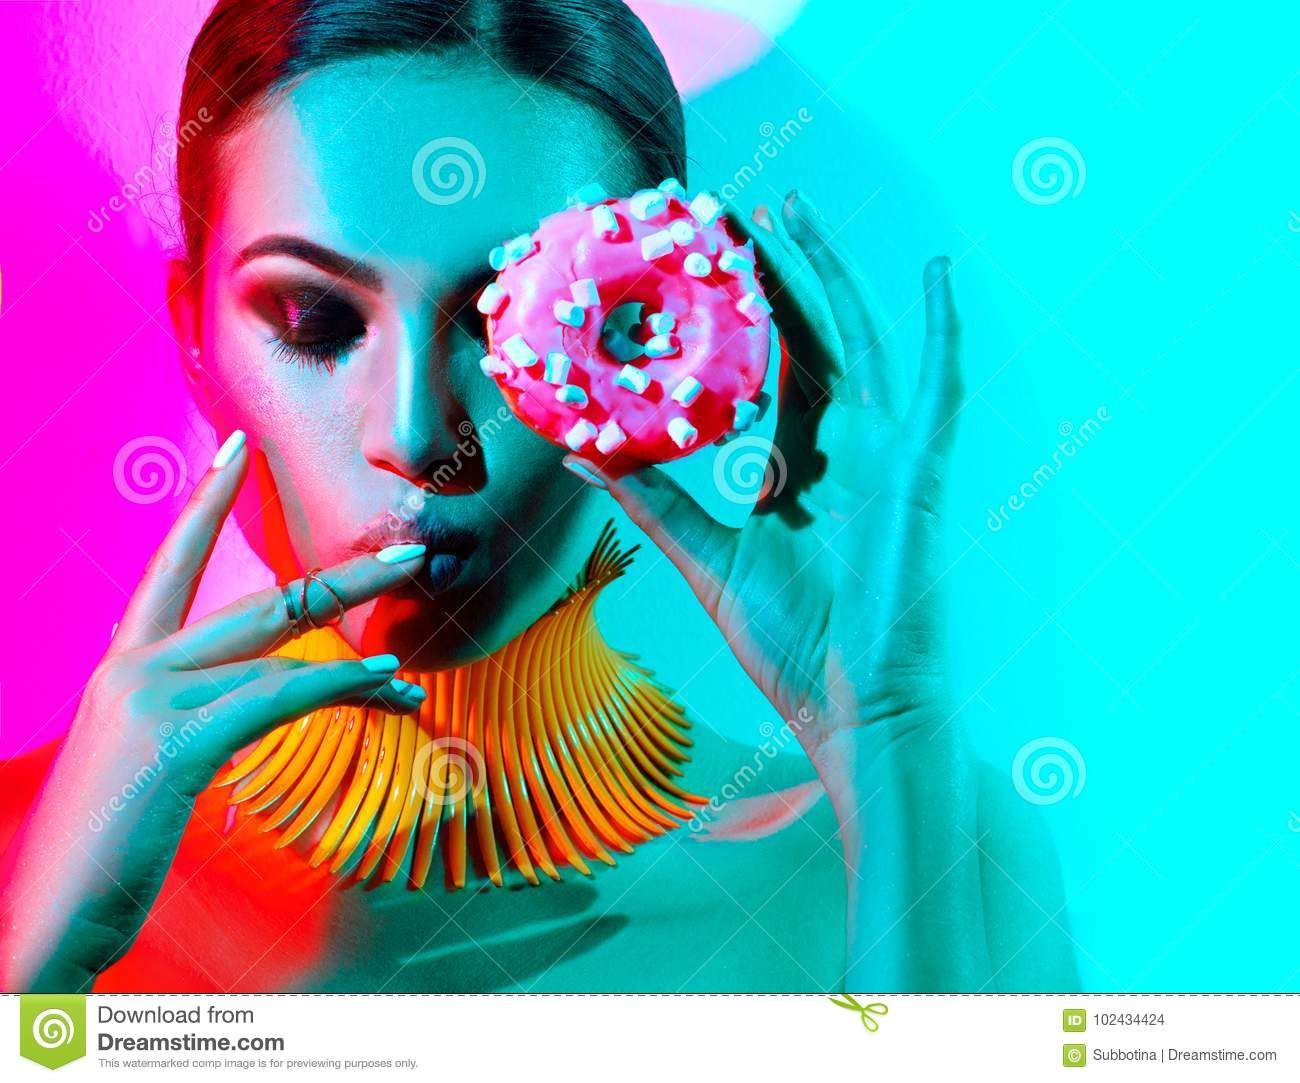 Fashion model woman posing in studio with donut